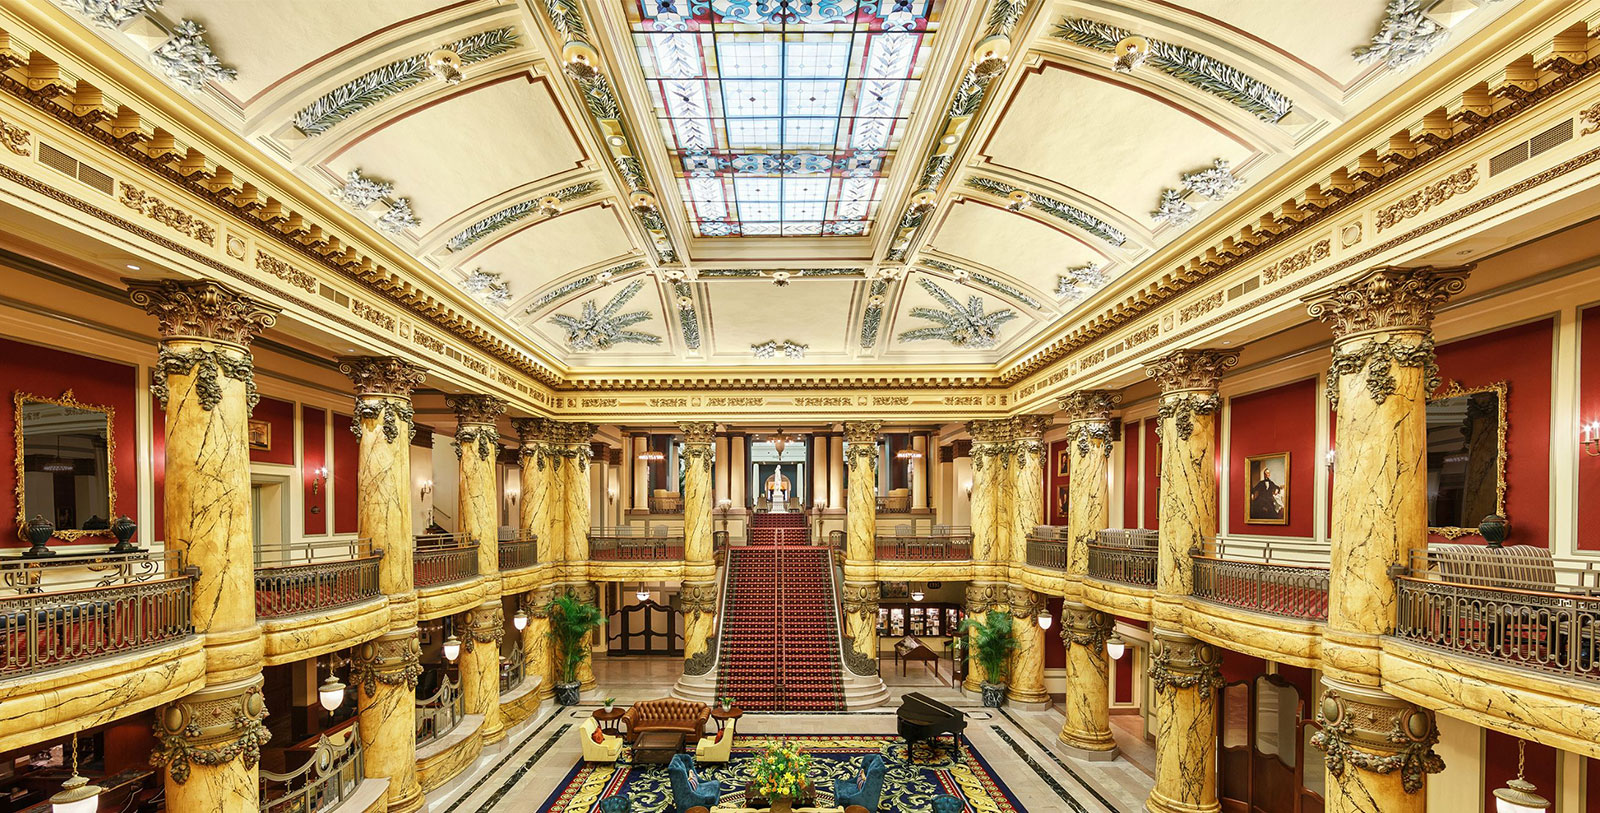 Image of Rotunda with Grand Staircase The Jefferson Hotel, 1895, Member of Historic Hotels of America, in Richmond, Virginia, Discover